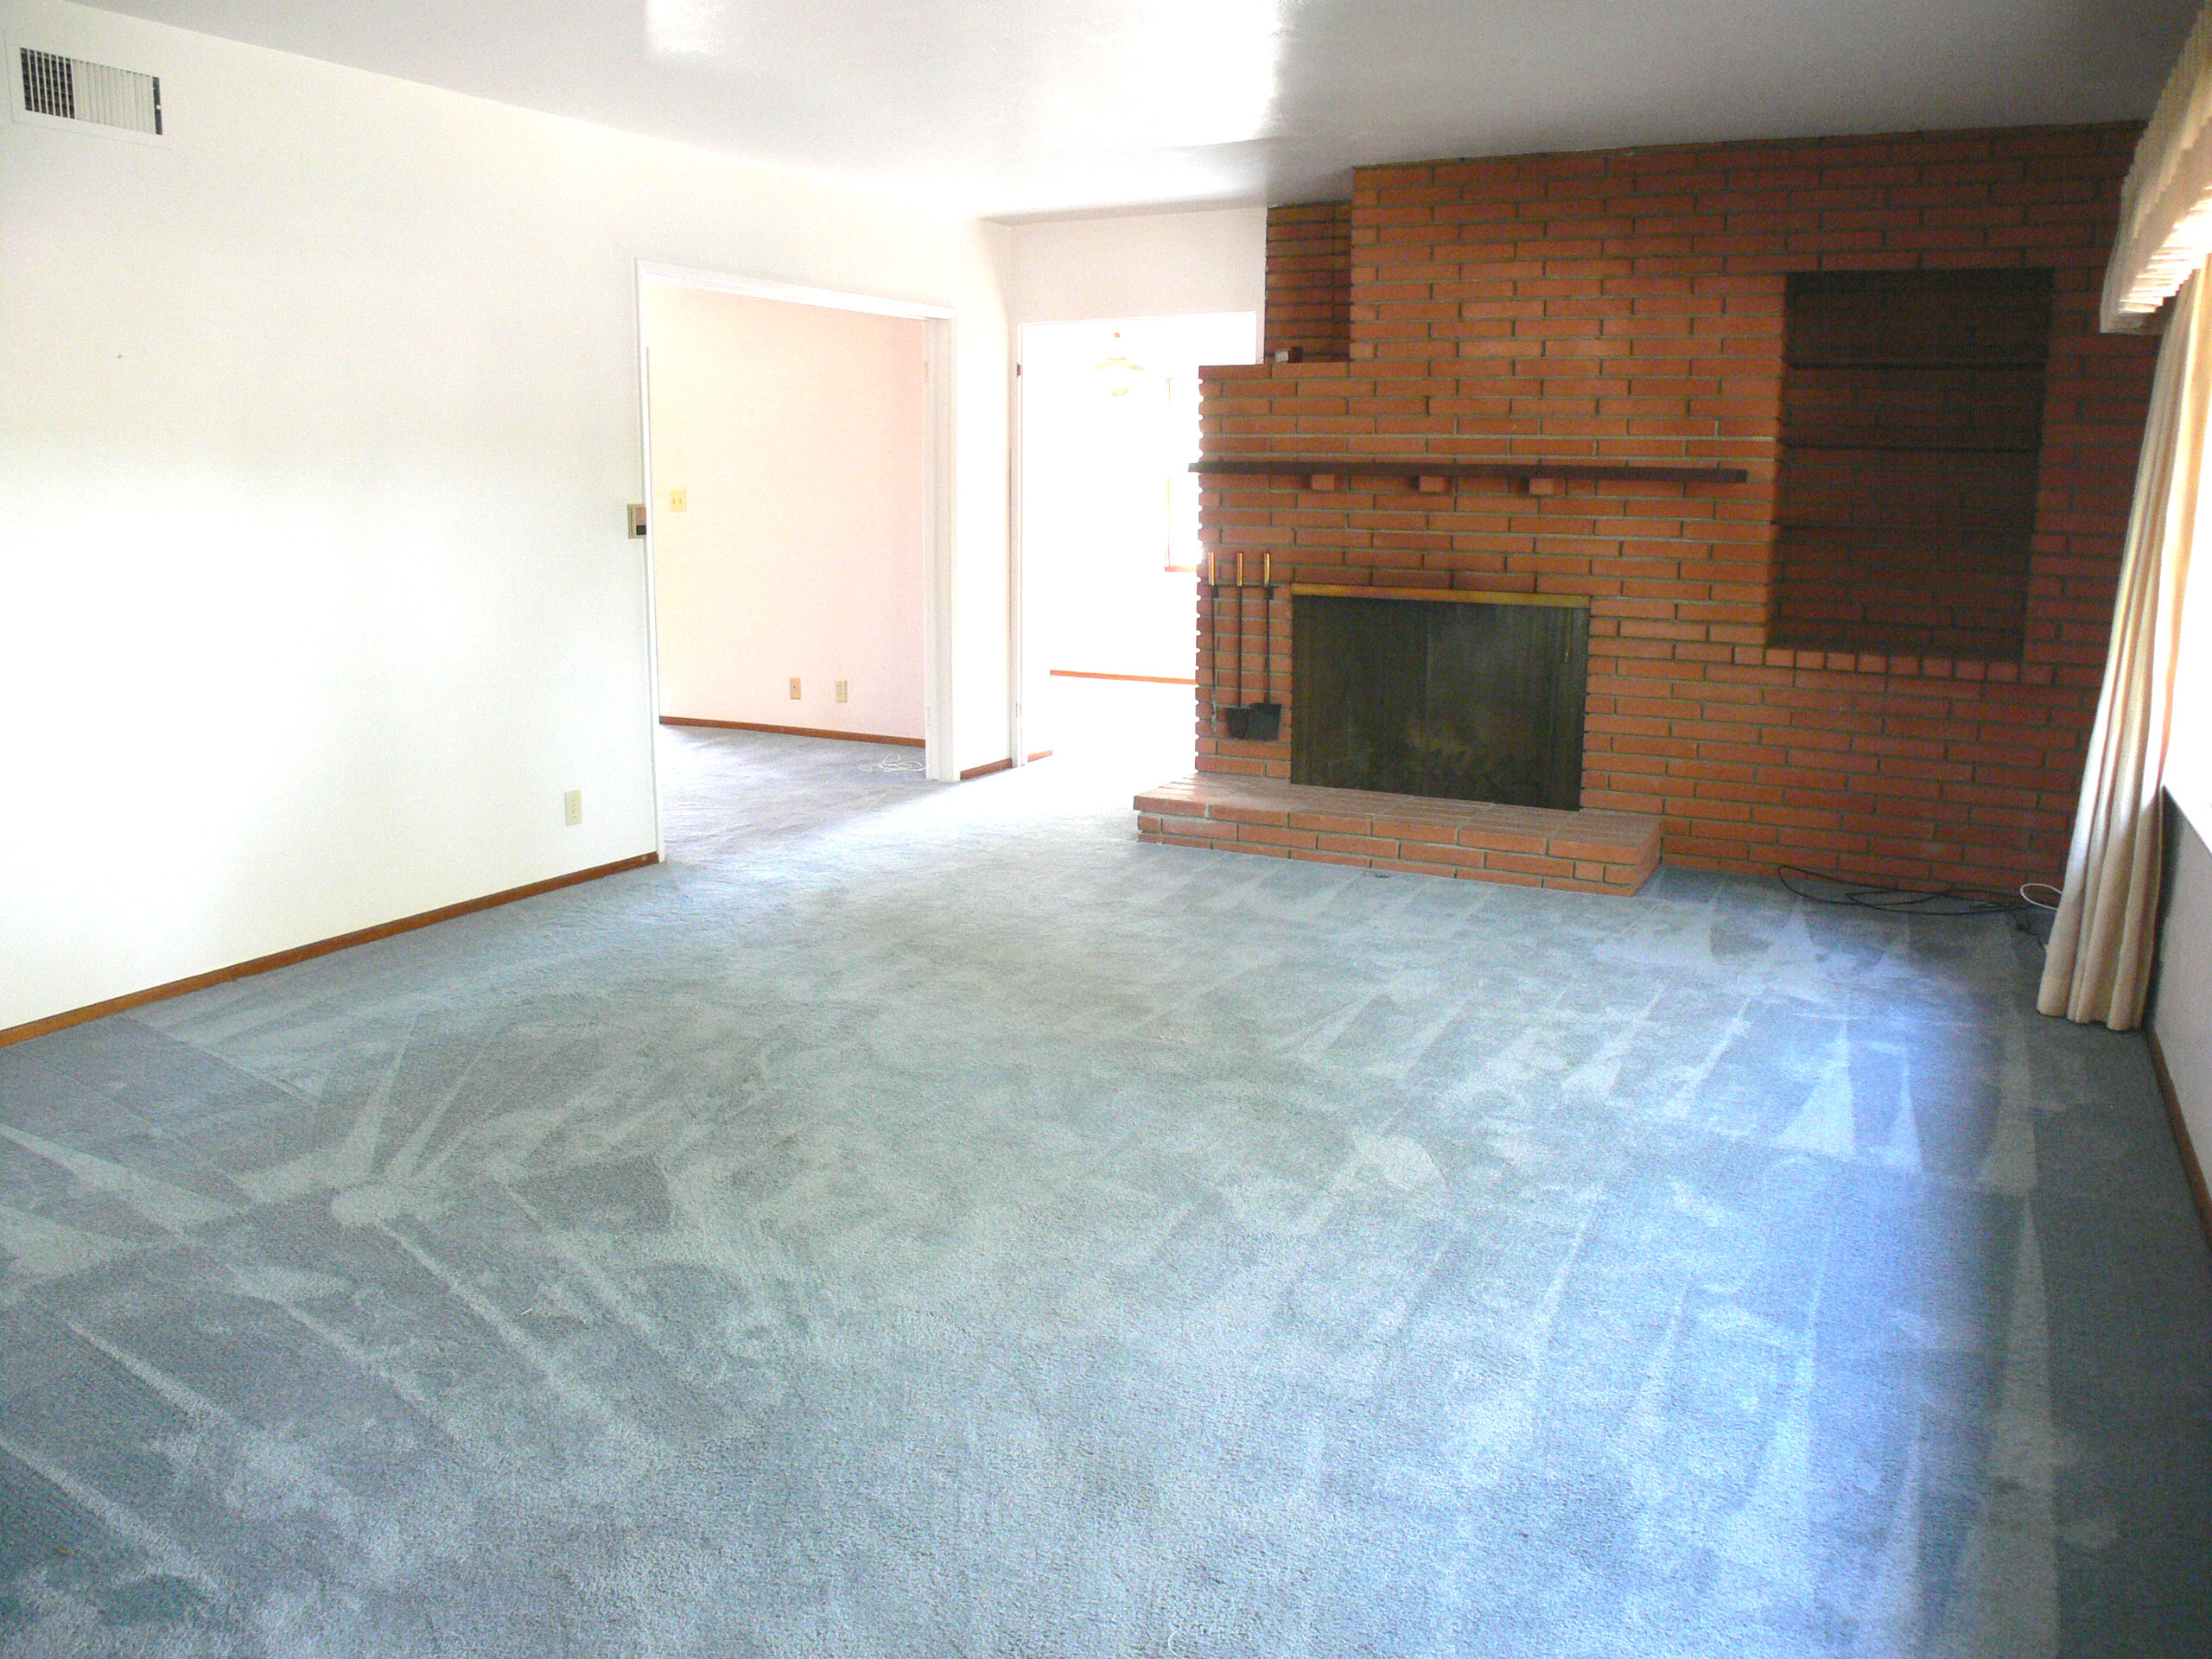 View of living room as you walk throught the front door. Keep in mind, the hardwood floors under this carpet are GORGEOUS! Note the built-in shelving next to the brick fireplace!